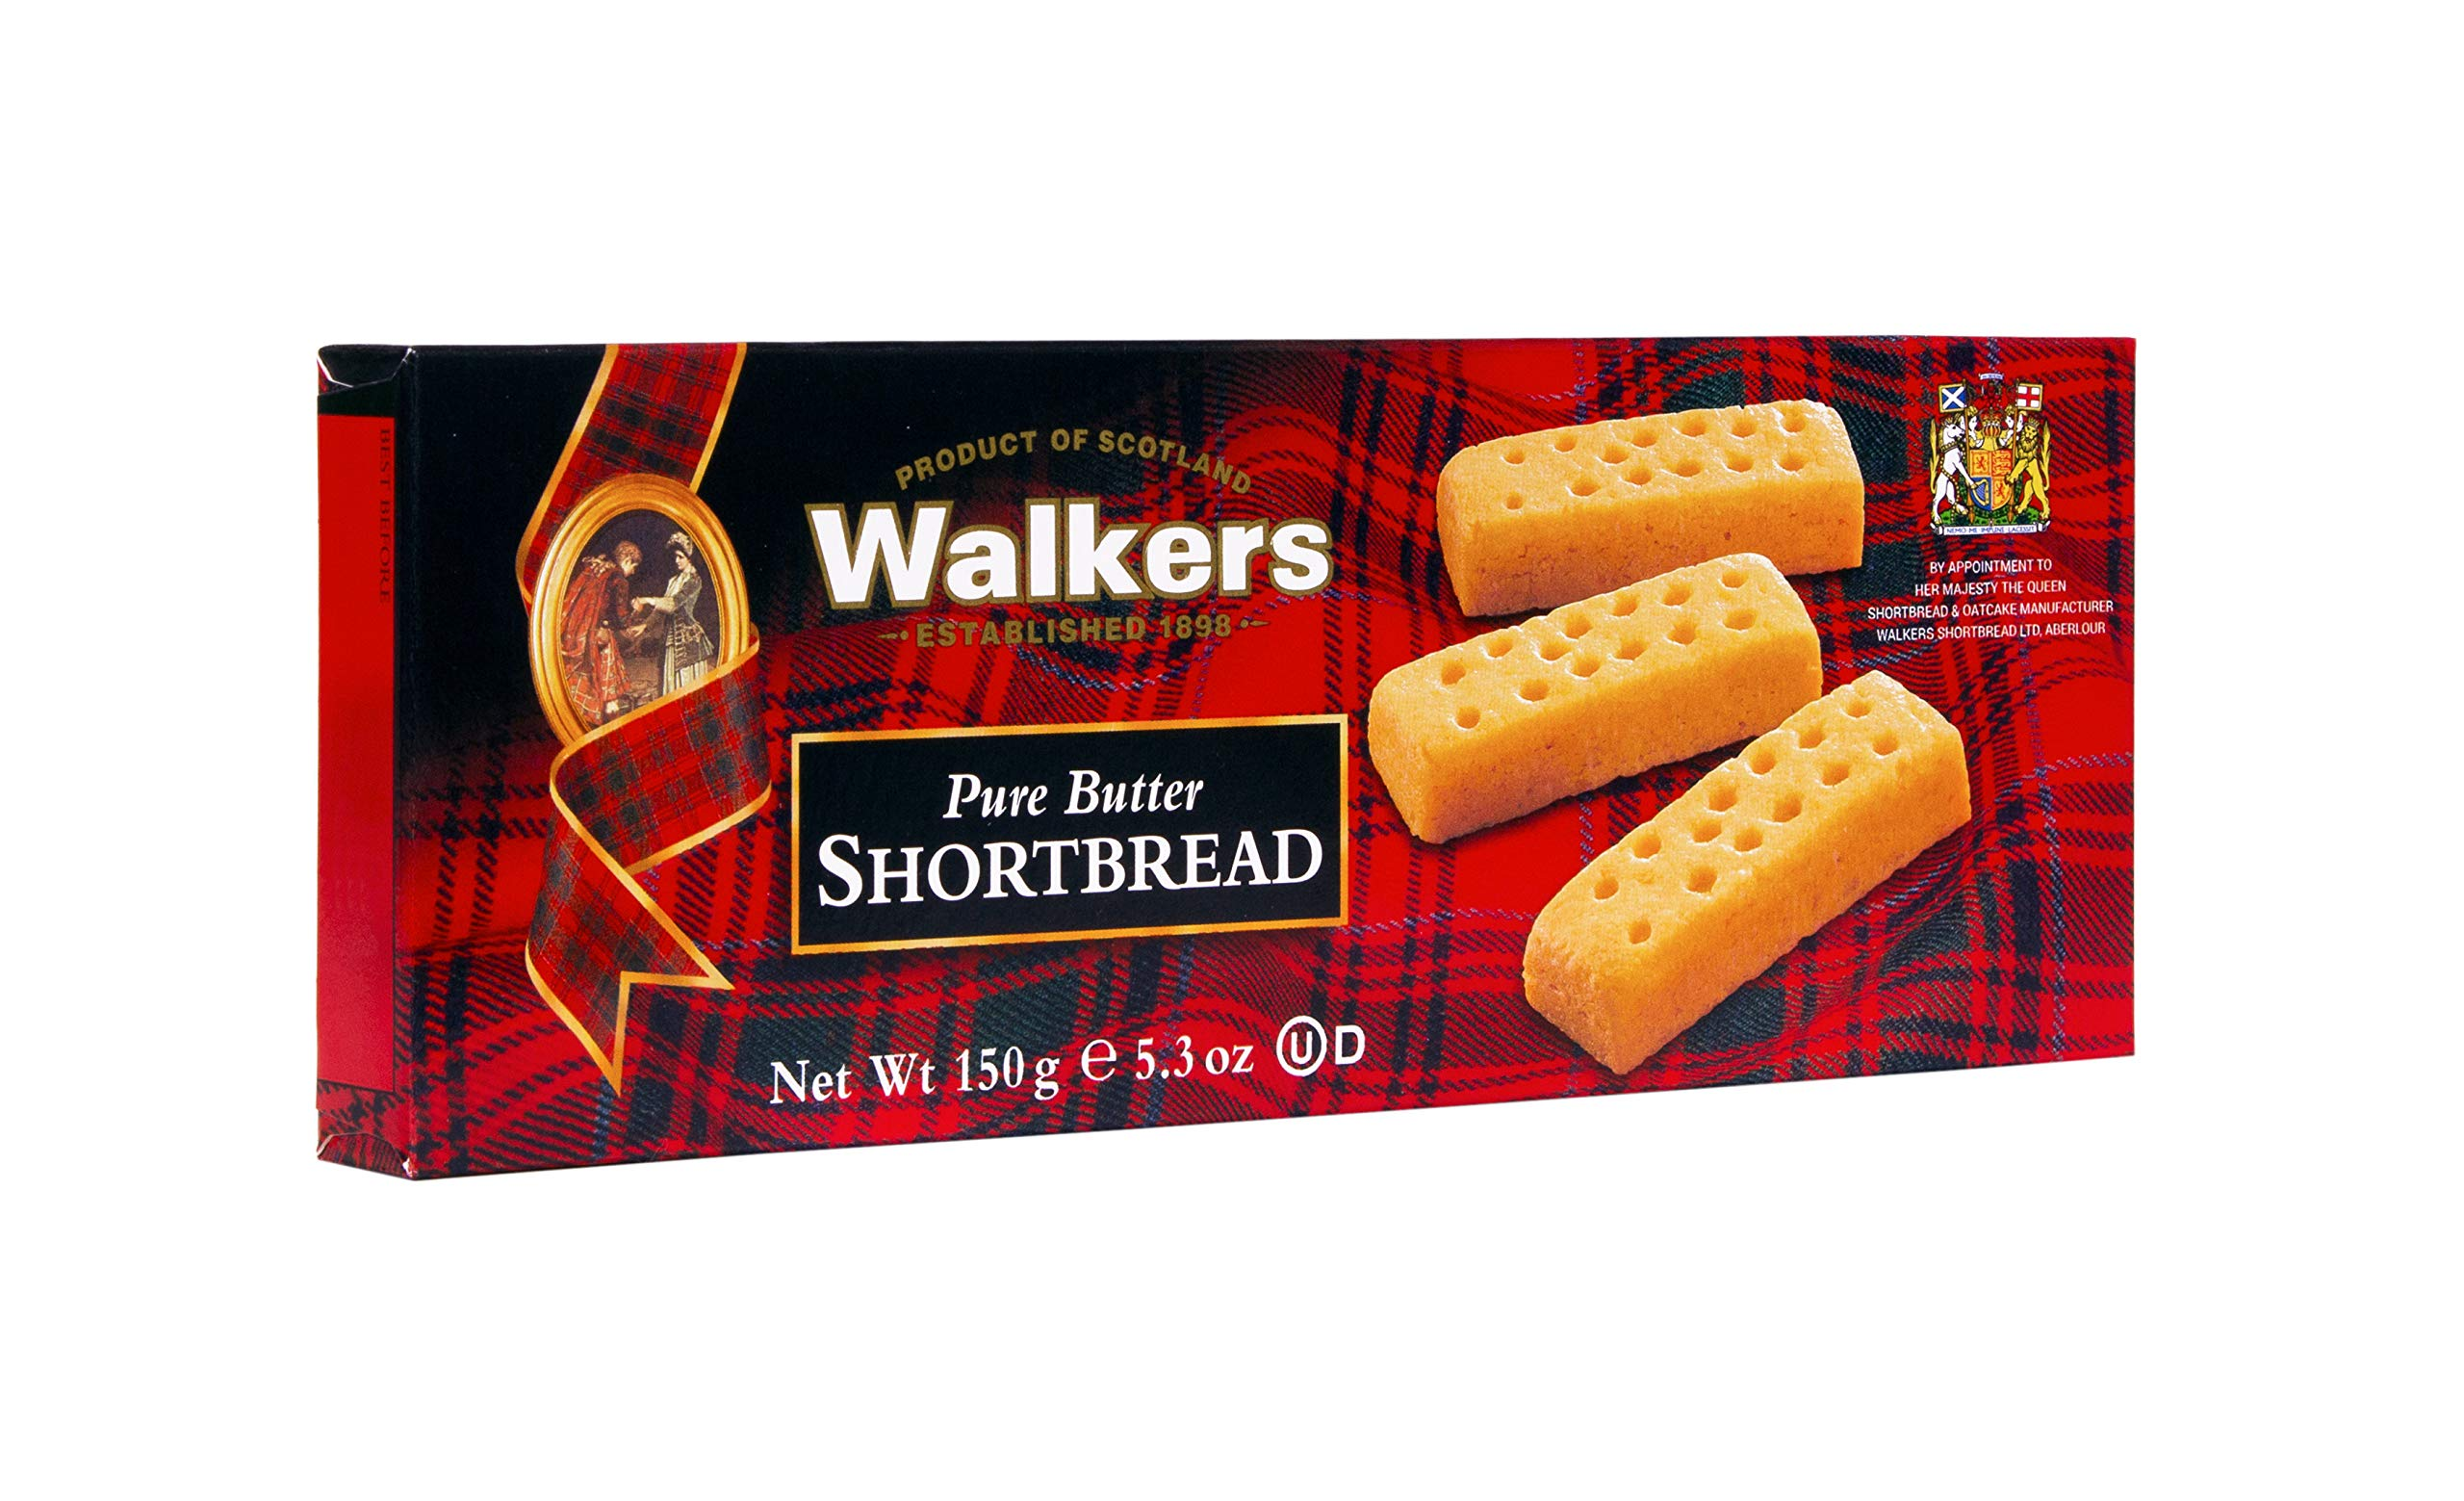 Walkers Shortbread Fingers, 5.3-oz. Boxes (Count of 6), Traditional and Simple Pure Butter Shortbread Cookies from the Scottish Highlands, Made with Quality Ingredients, Free from Artificial Flavors by Walkers Shortbread